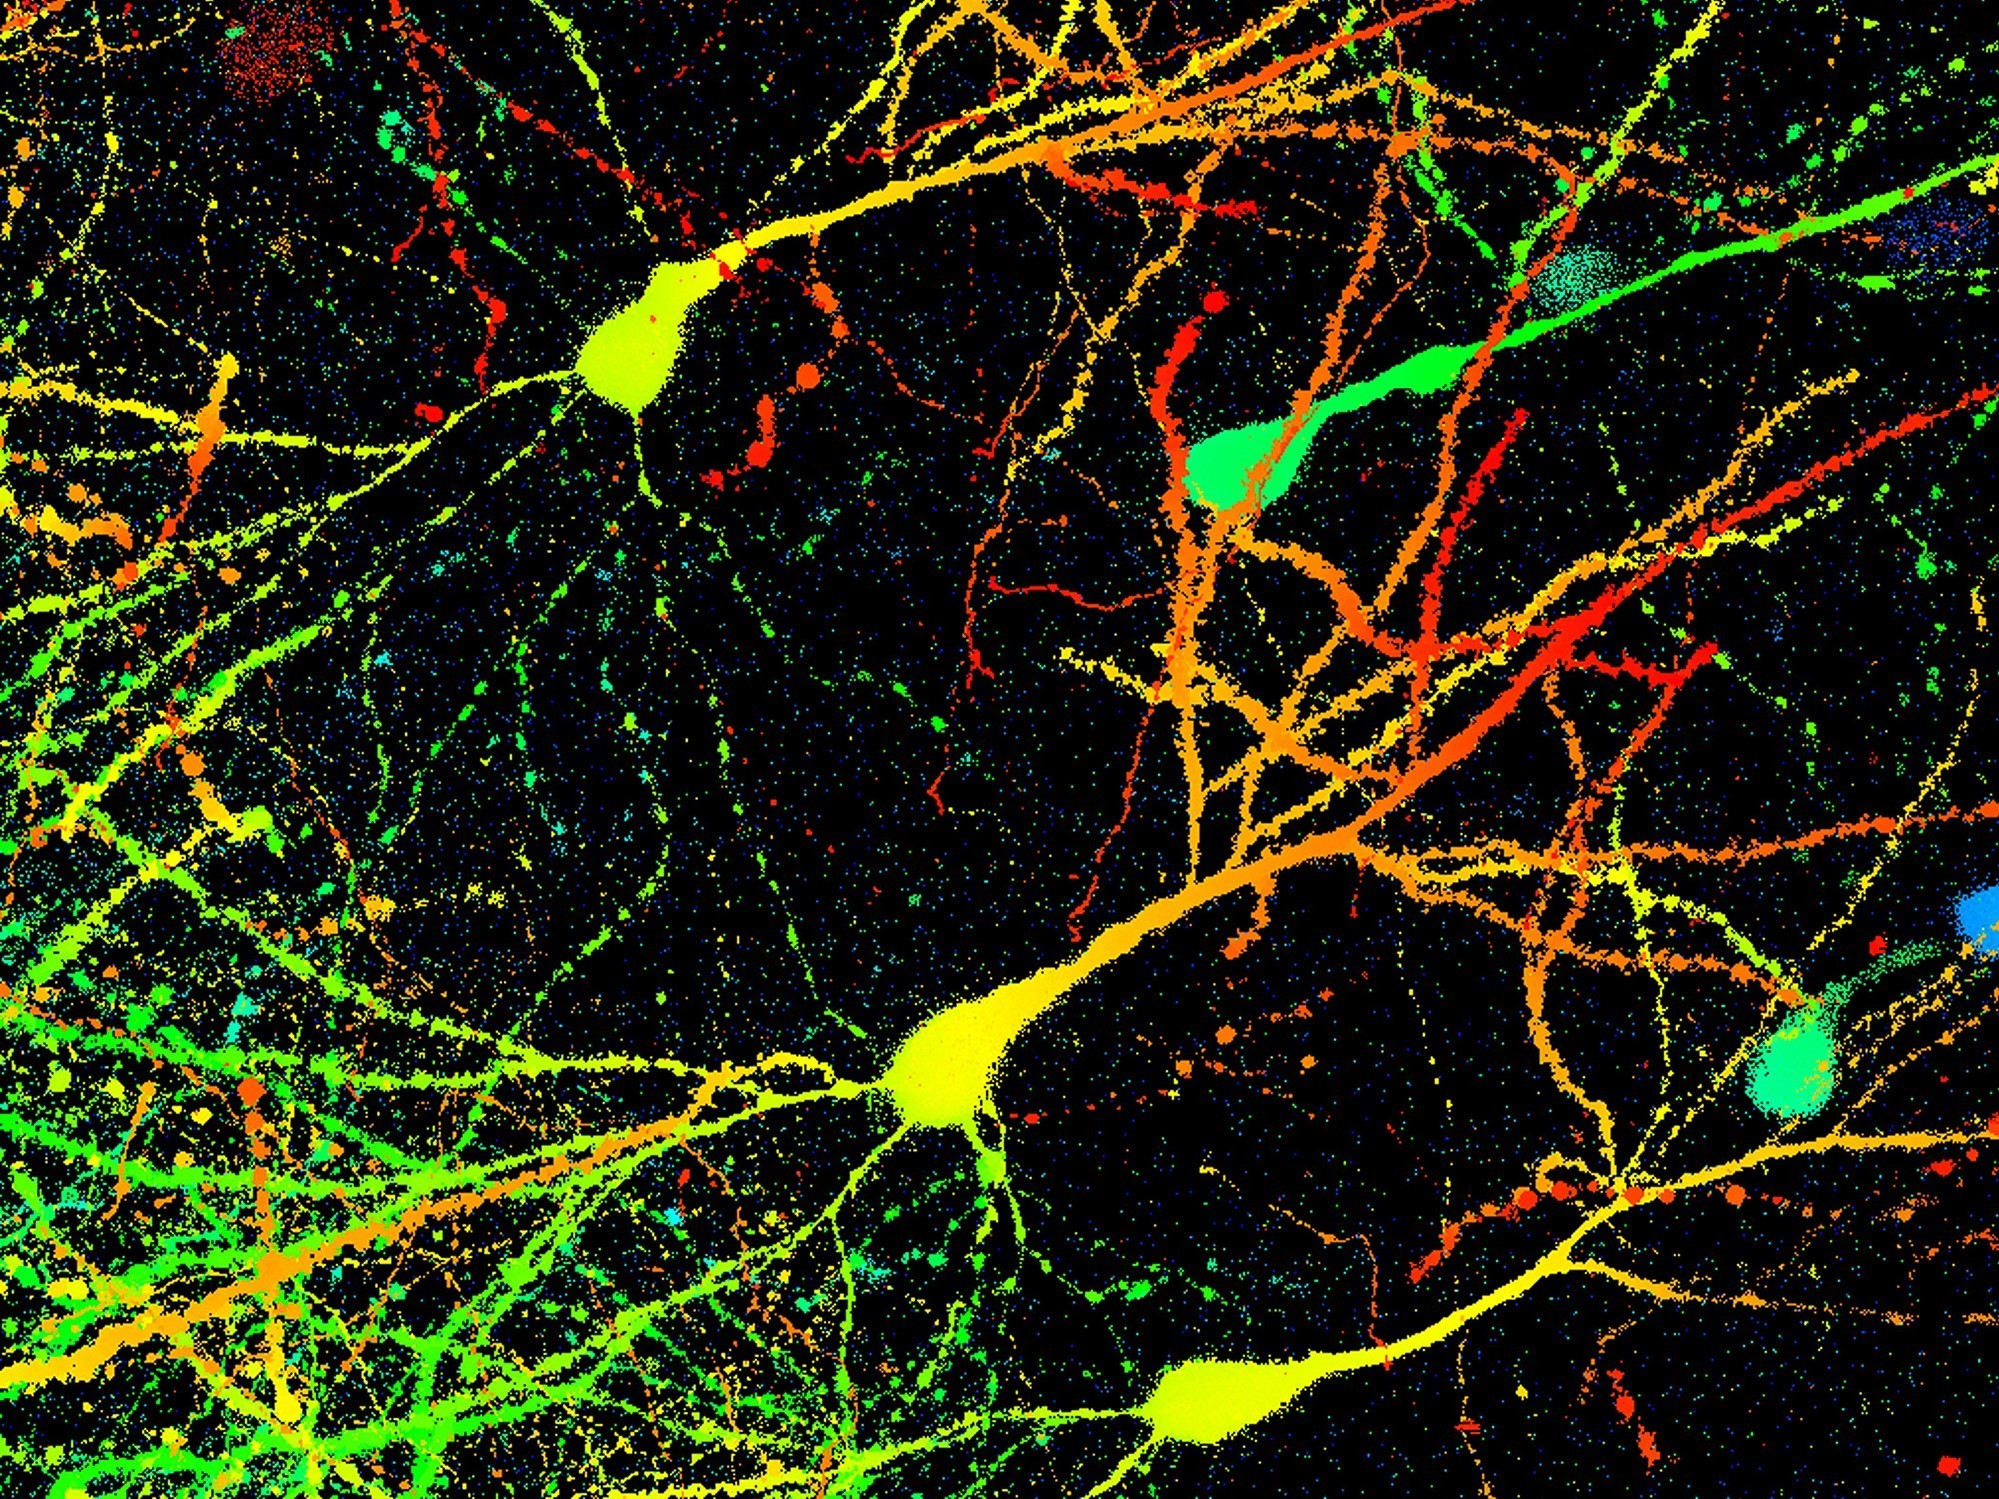 Researchers Discover 'Anxiety Cells' In The Brain